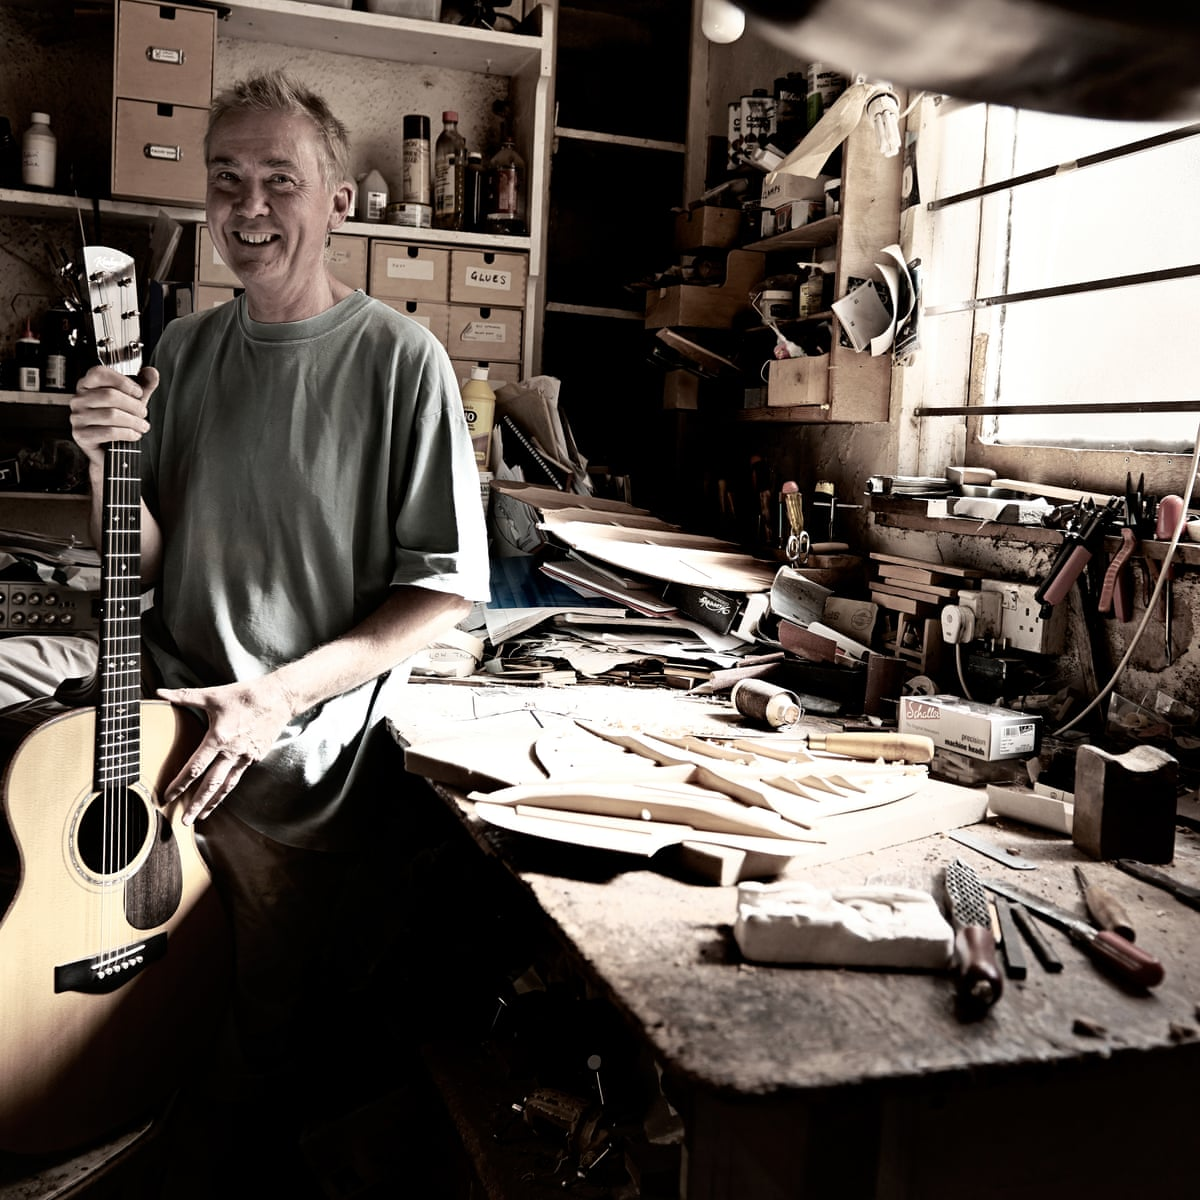 How do I become ... a guitar maker | Work & careers | The Guardian